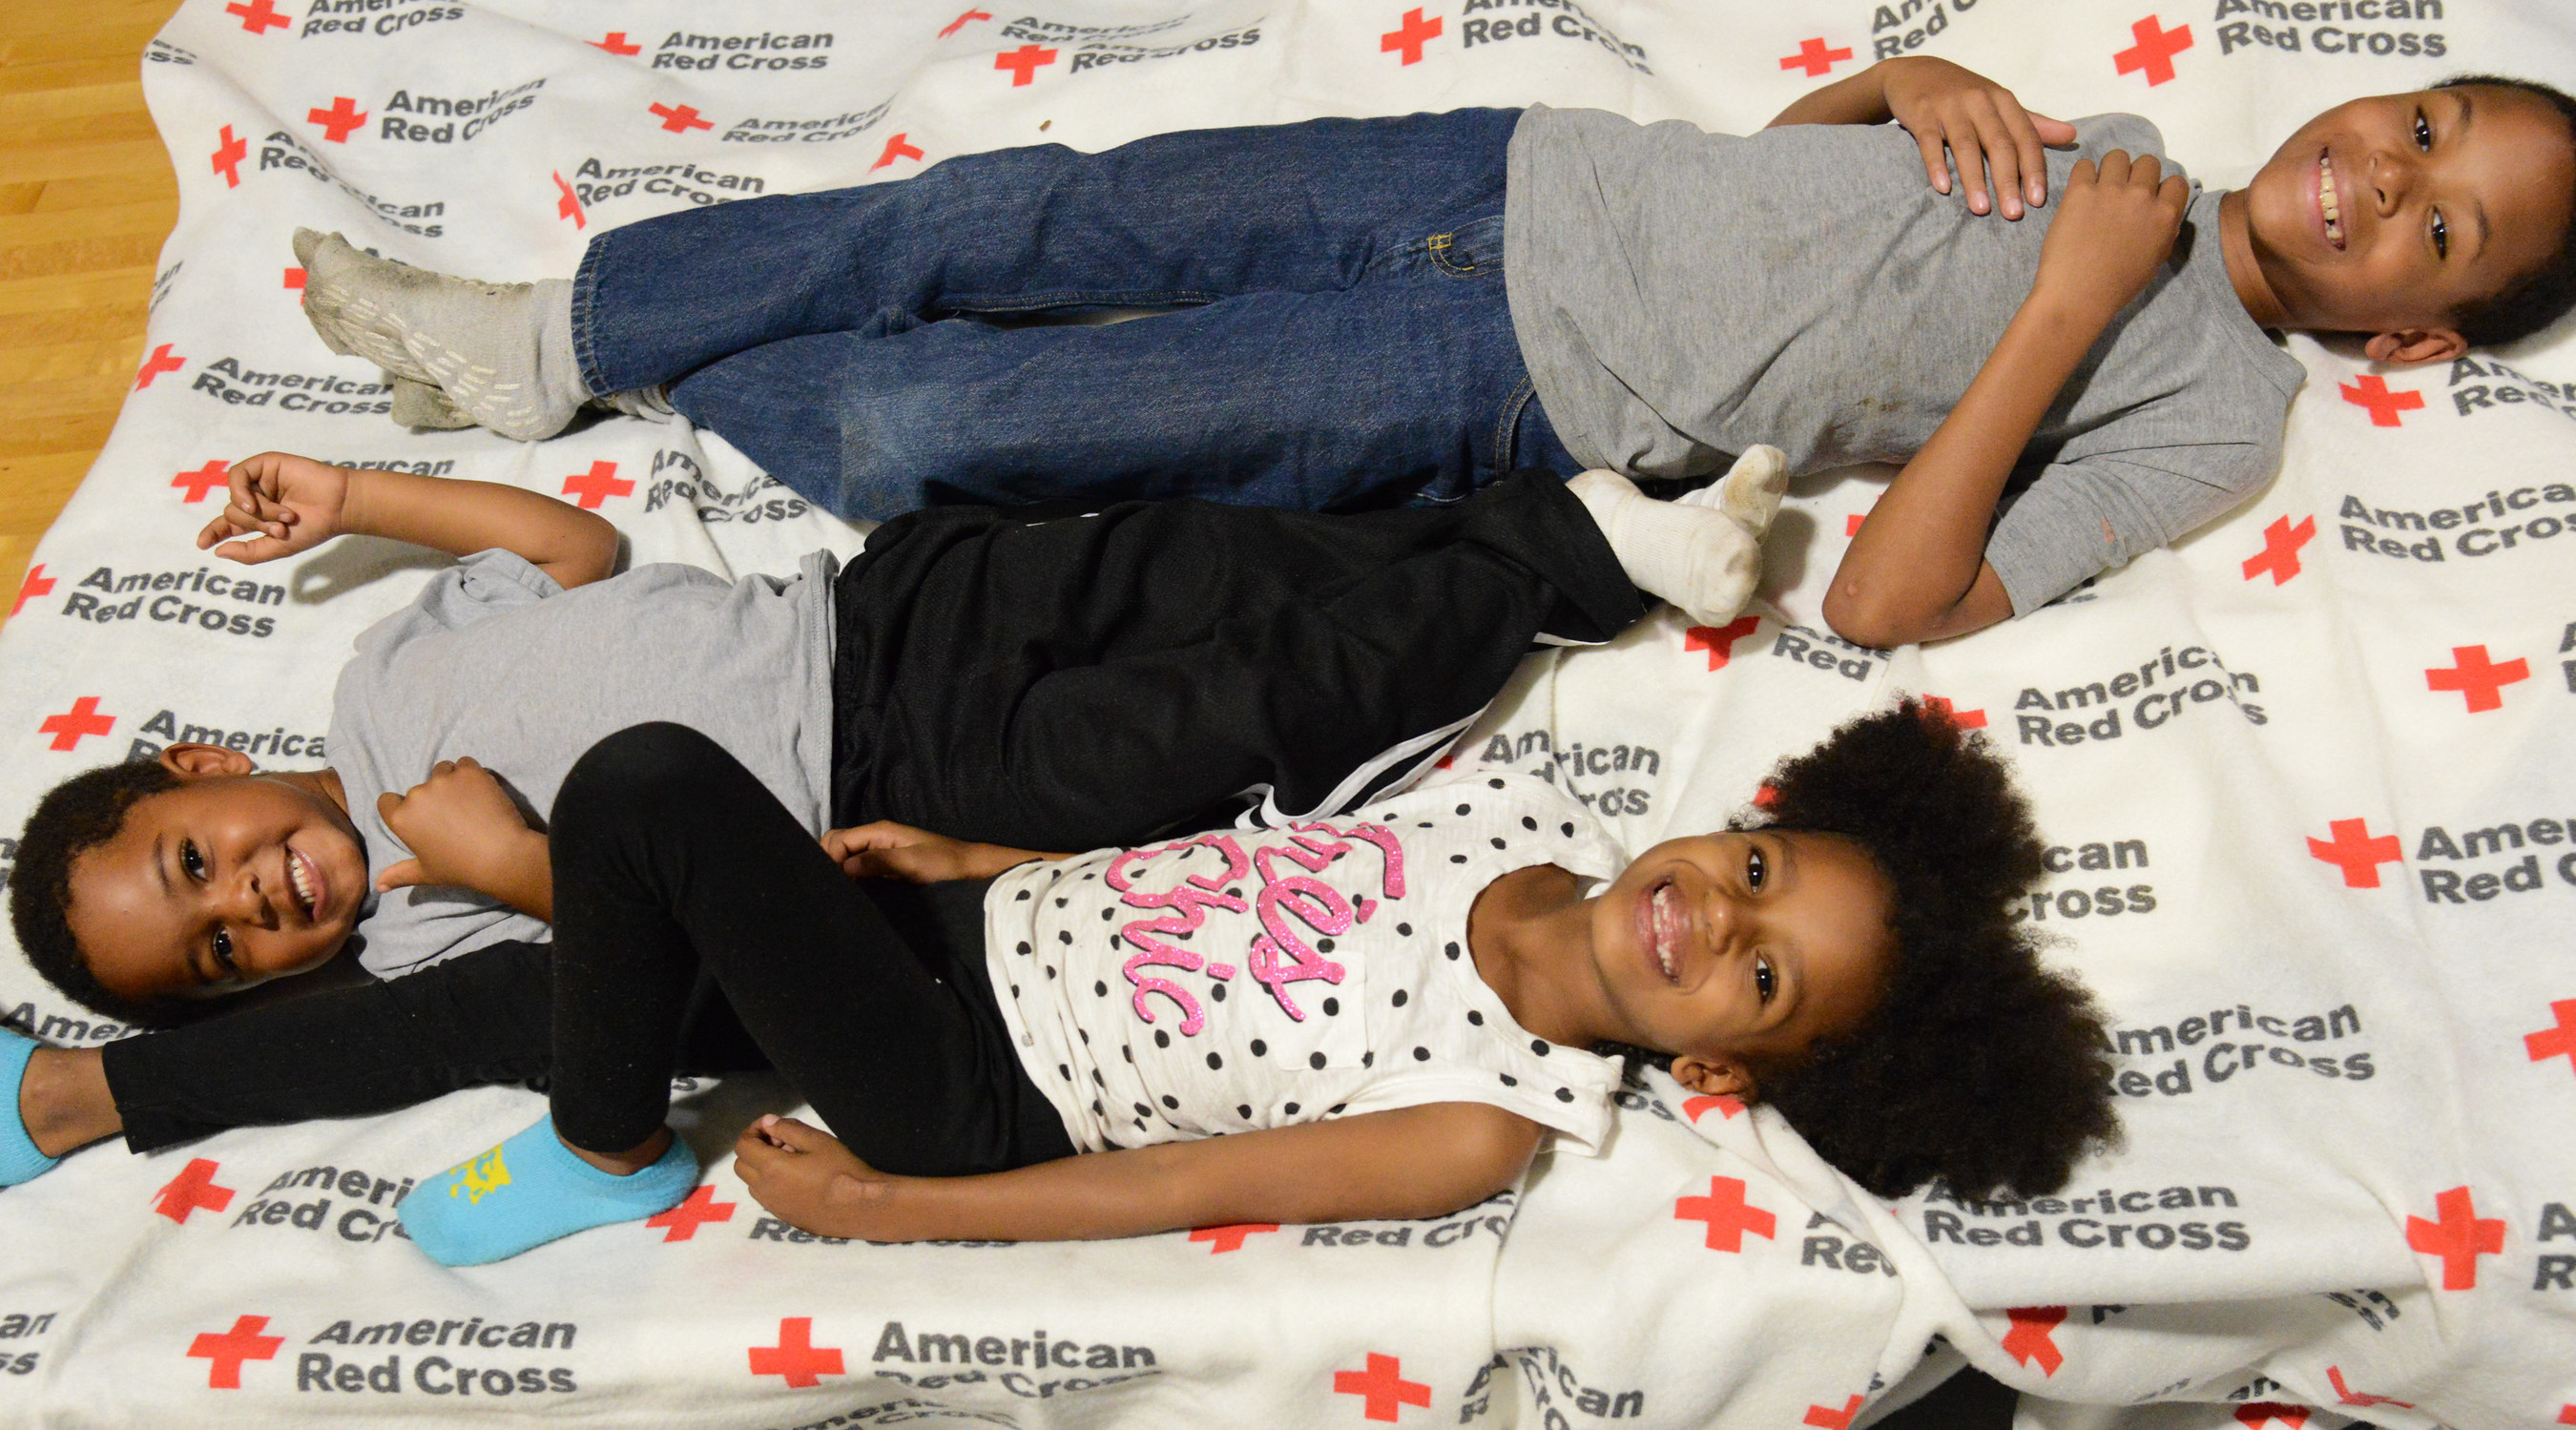 Hurricane Matthew: October 13, 2016. Kinston, North Carolina - (The Red Cross shelter at Kinston High School) - While their families focused on getting their belongings in order, the children at the Kinston High School shelter put their energy into building a tent out of cots and blankets.